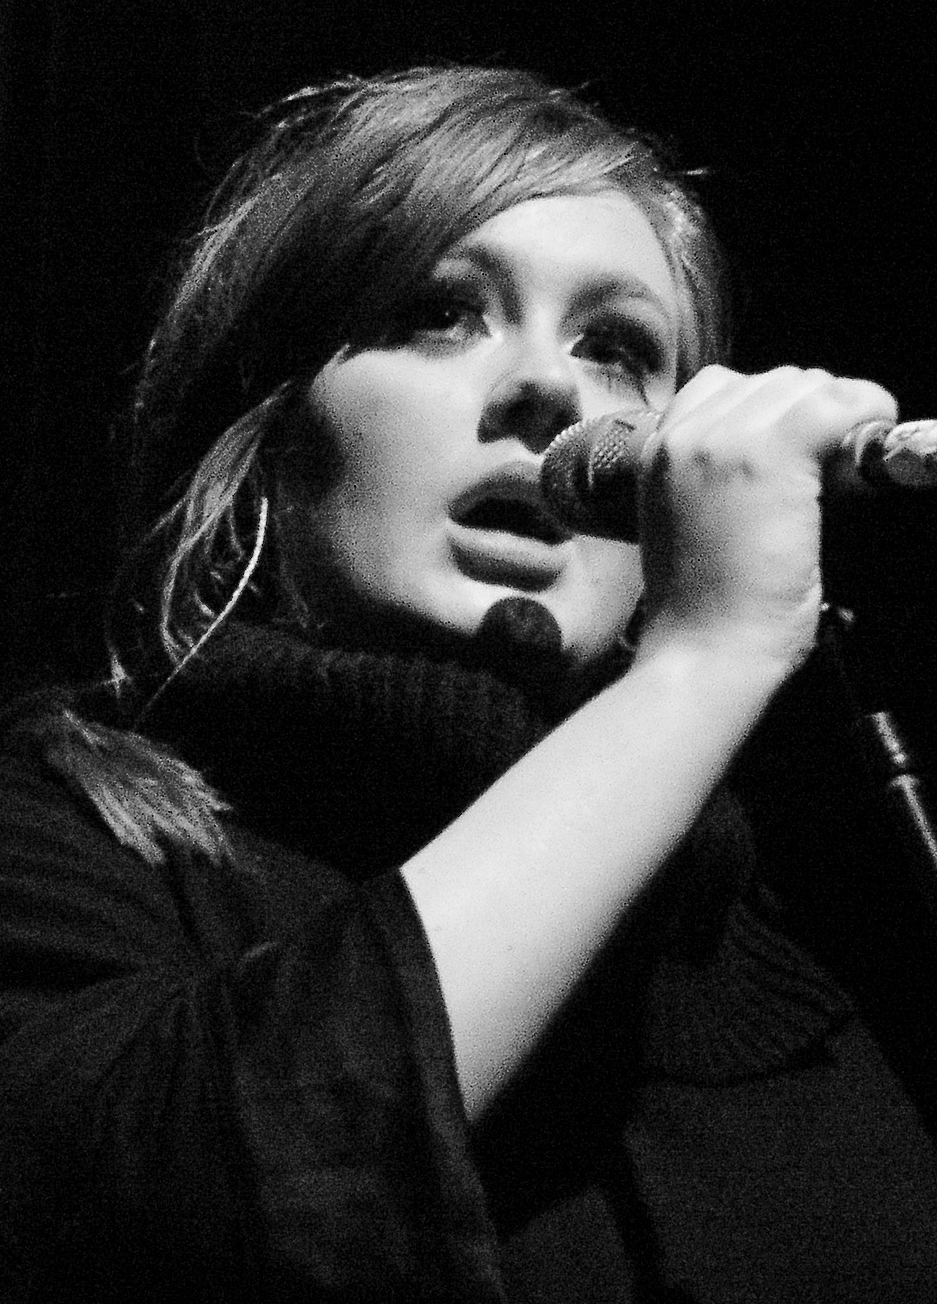 """Adele - Live 2009 (4) cropped"" by CHRISTOPHER MACSURAK. Licensed under CC BY 2.0 via Commons - https://commons.wikimedia.org/wiki/File:Adele_-_Live_2009_(4)_cropped.jpg#/media/File:Adele_-_Live_2009_(4)_cropped.jpg"